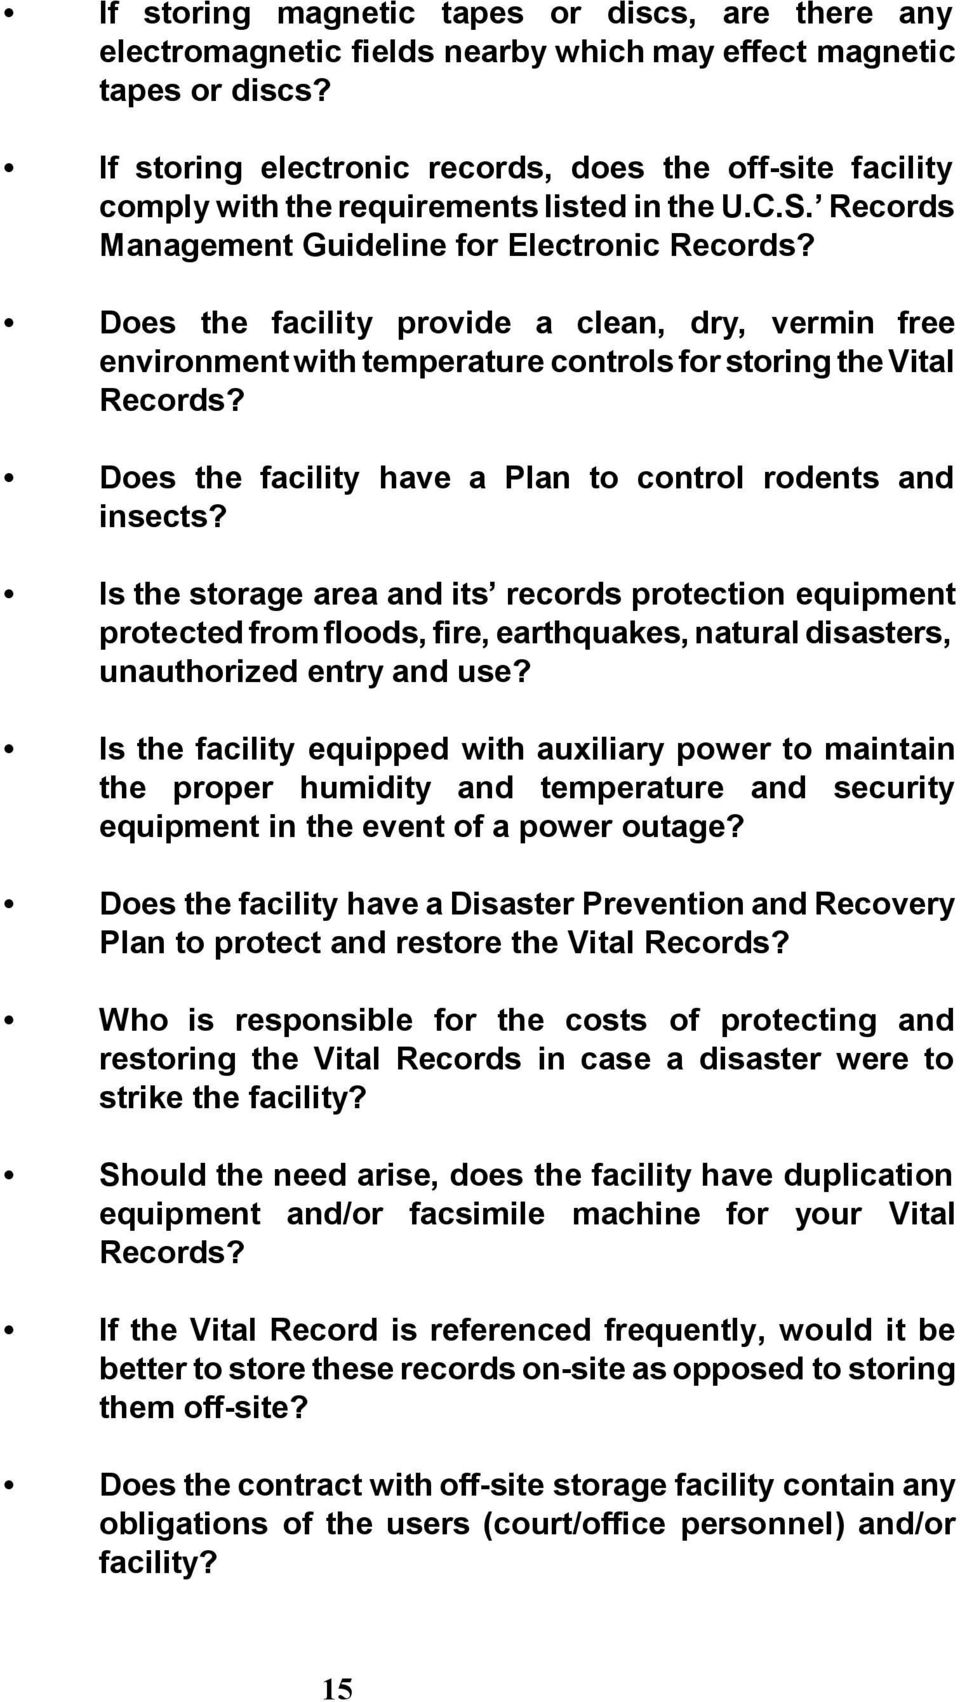 Does the facility provide a clean, dry, vermin free environment with temperature controls for storing the Vital Records? Does the facility have a Plan to control rodents and insects?